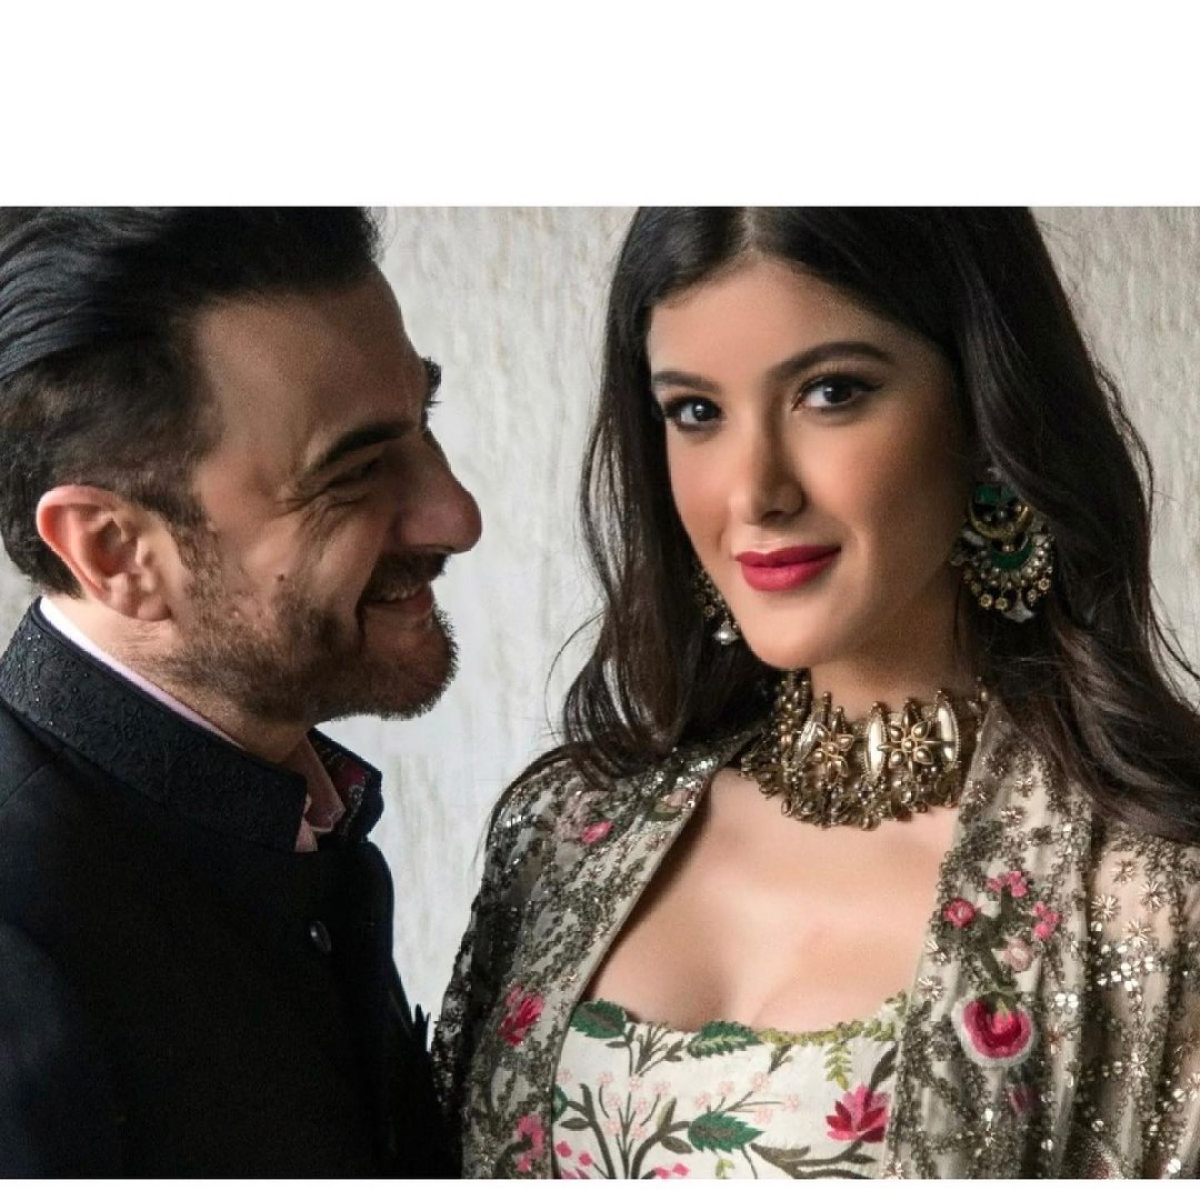 How would Sanjay Kapoor react to daughter Shanaya's 'intimate' scenes? Here's what wife Maheep has to say